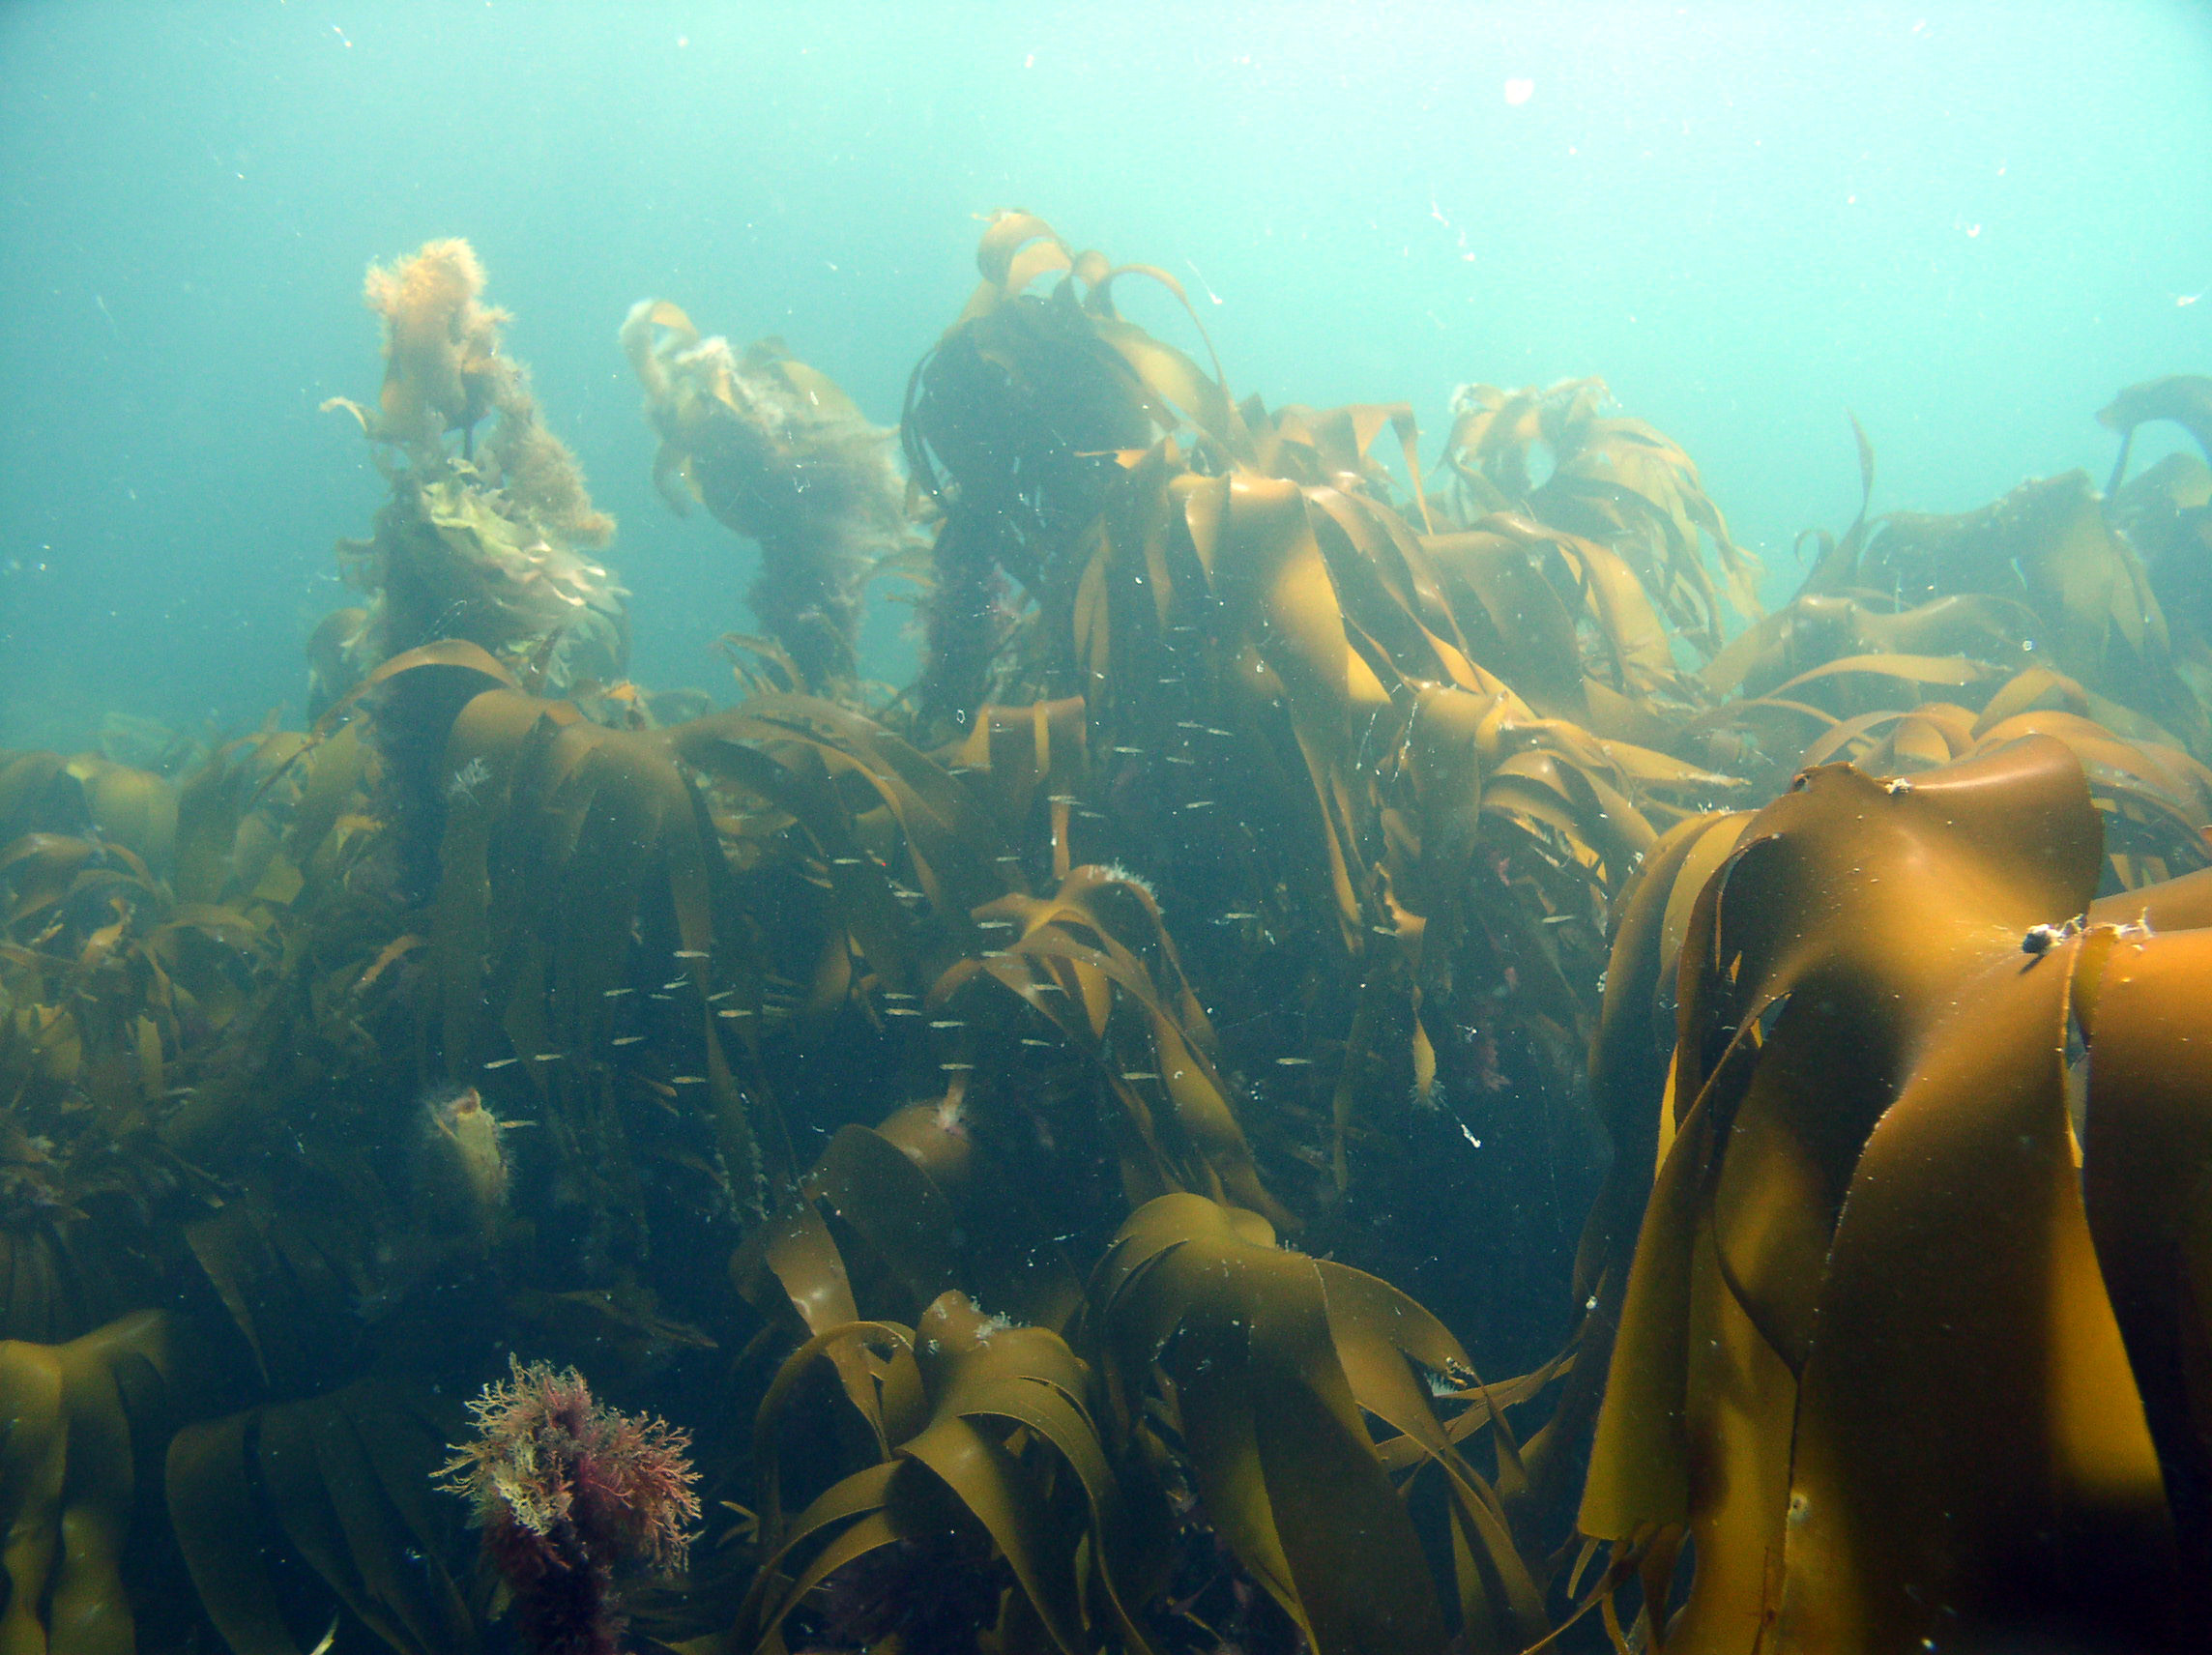 A shoal of small fish dart above the sunlit kelp (Laminaria hyperborea) at Taran Mor reef, Loch Reasort, west Isle of Harris. (c) Calum Duncan/MCS